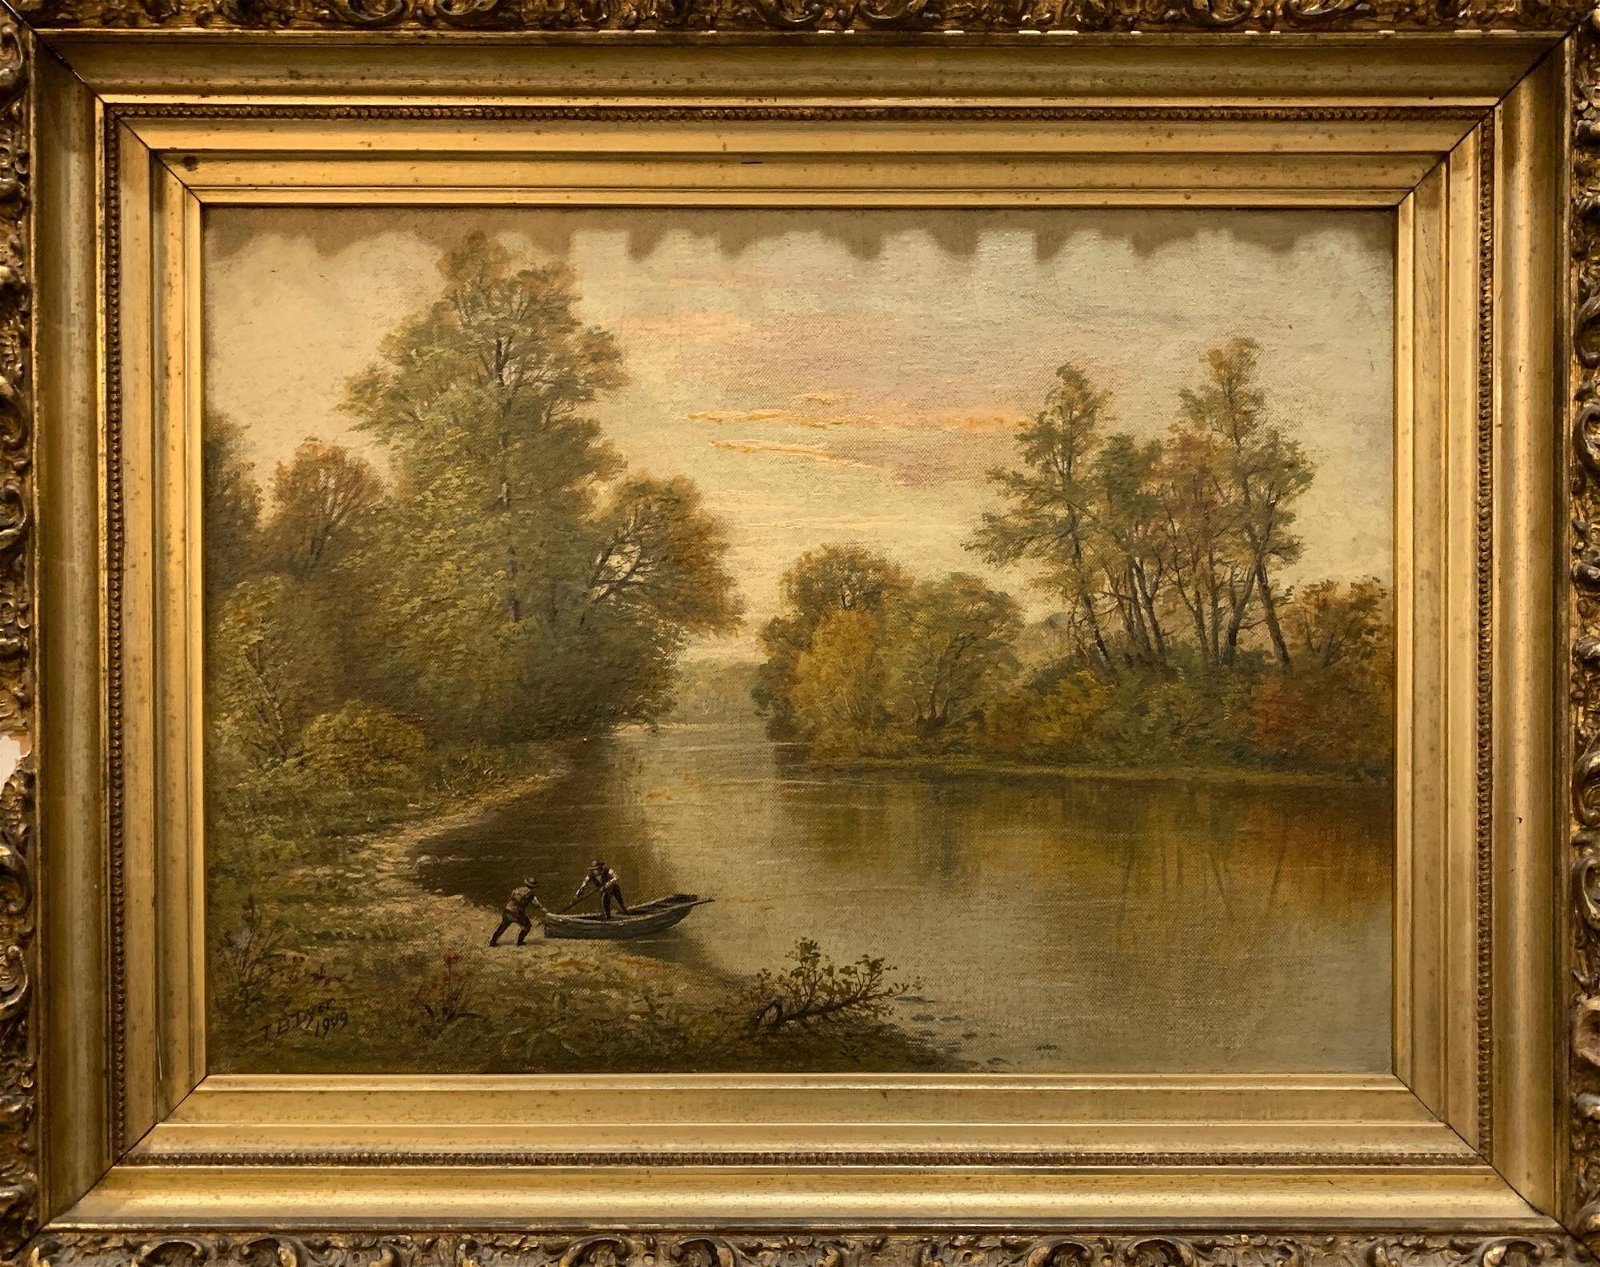 T. B. DYER OIL ON CANVAS, MEN WITH ROW BOAT, DATED